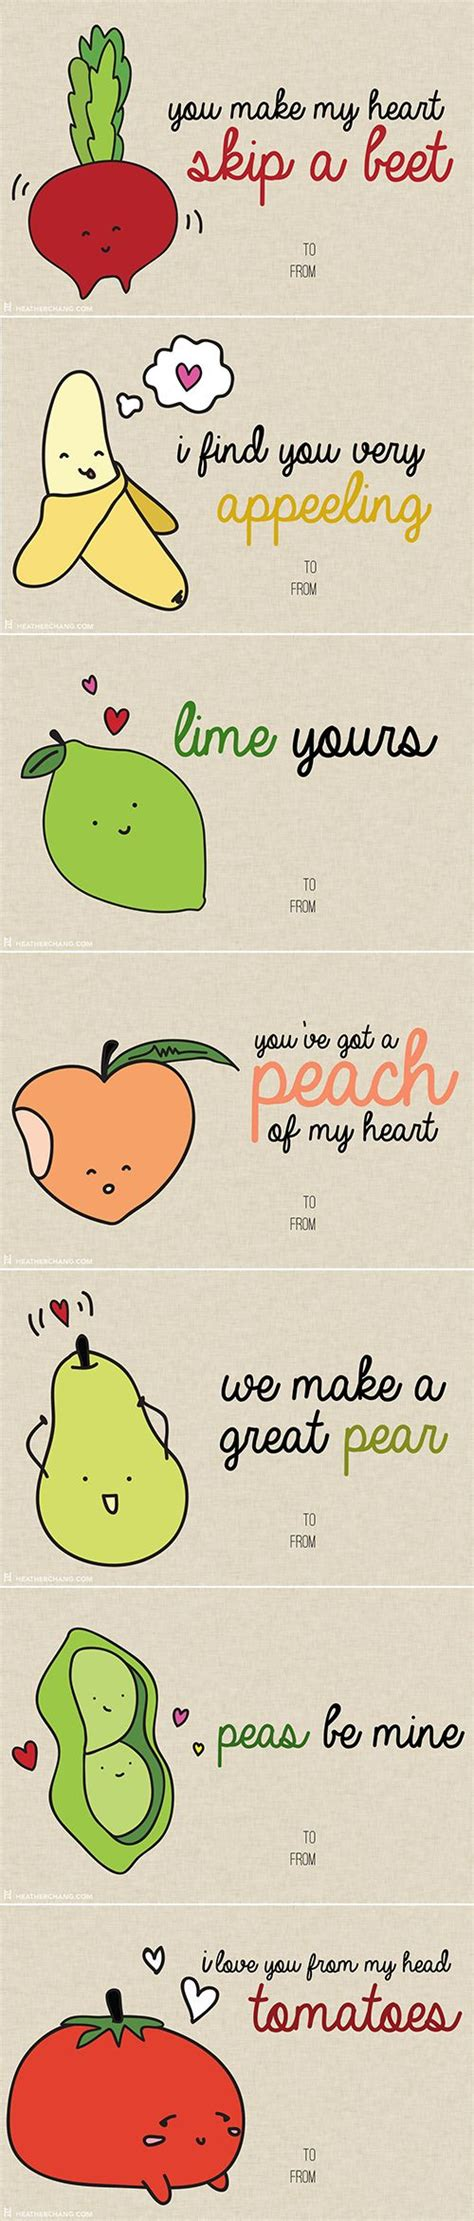 printable corny jokes food puns puns and printable cards on pinterest